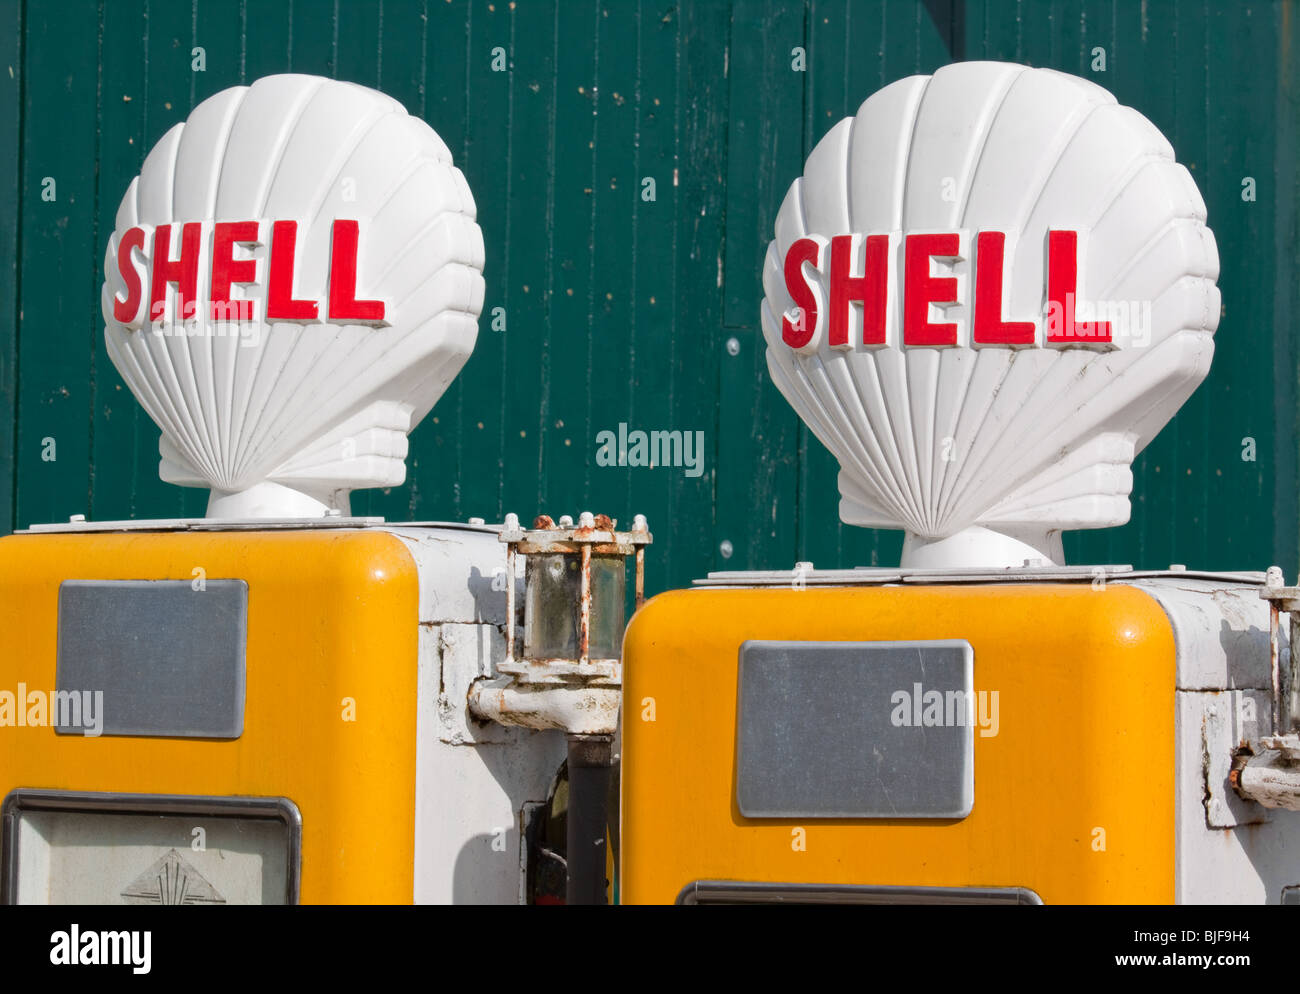 Old Fashioned Shell Petrol Pumps - Stock Image